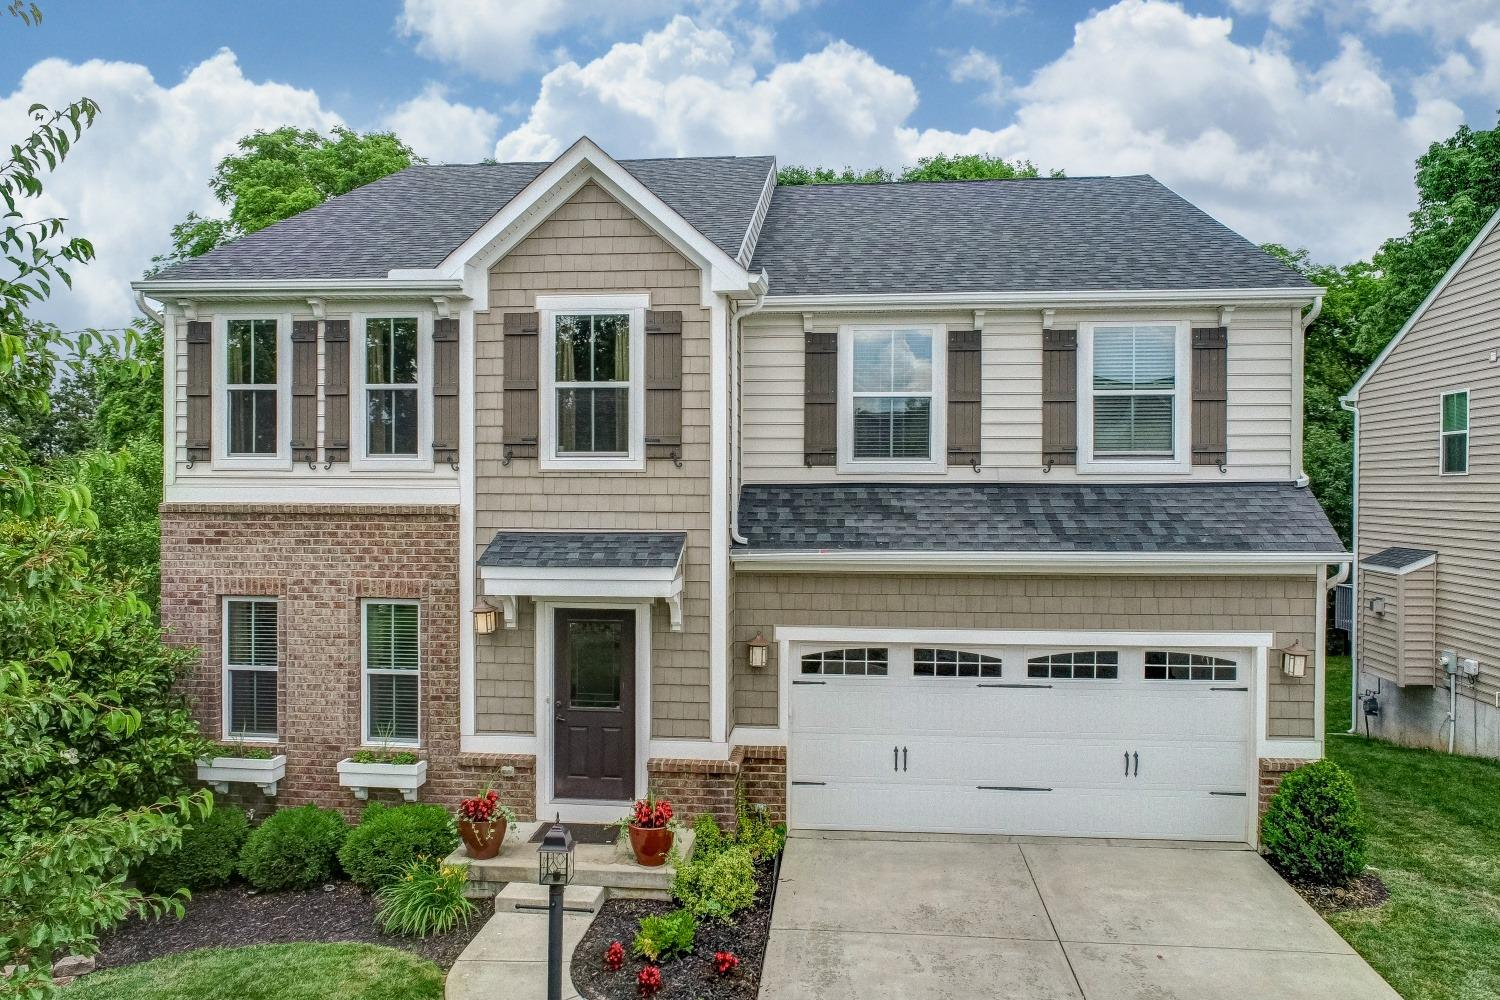 4784 Lakeview Court, South Lebanon, OH 45065